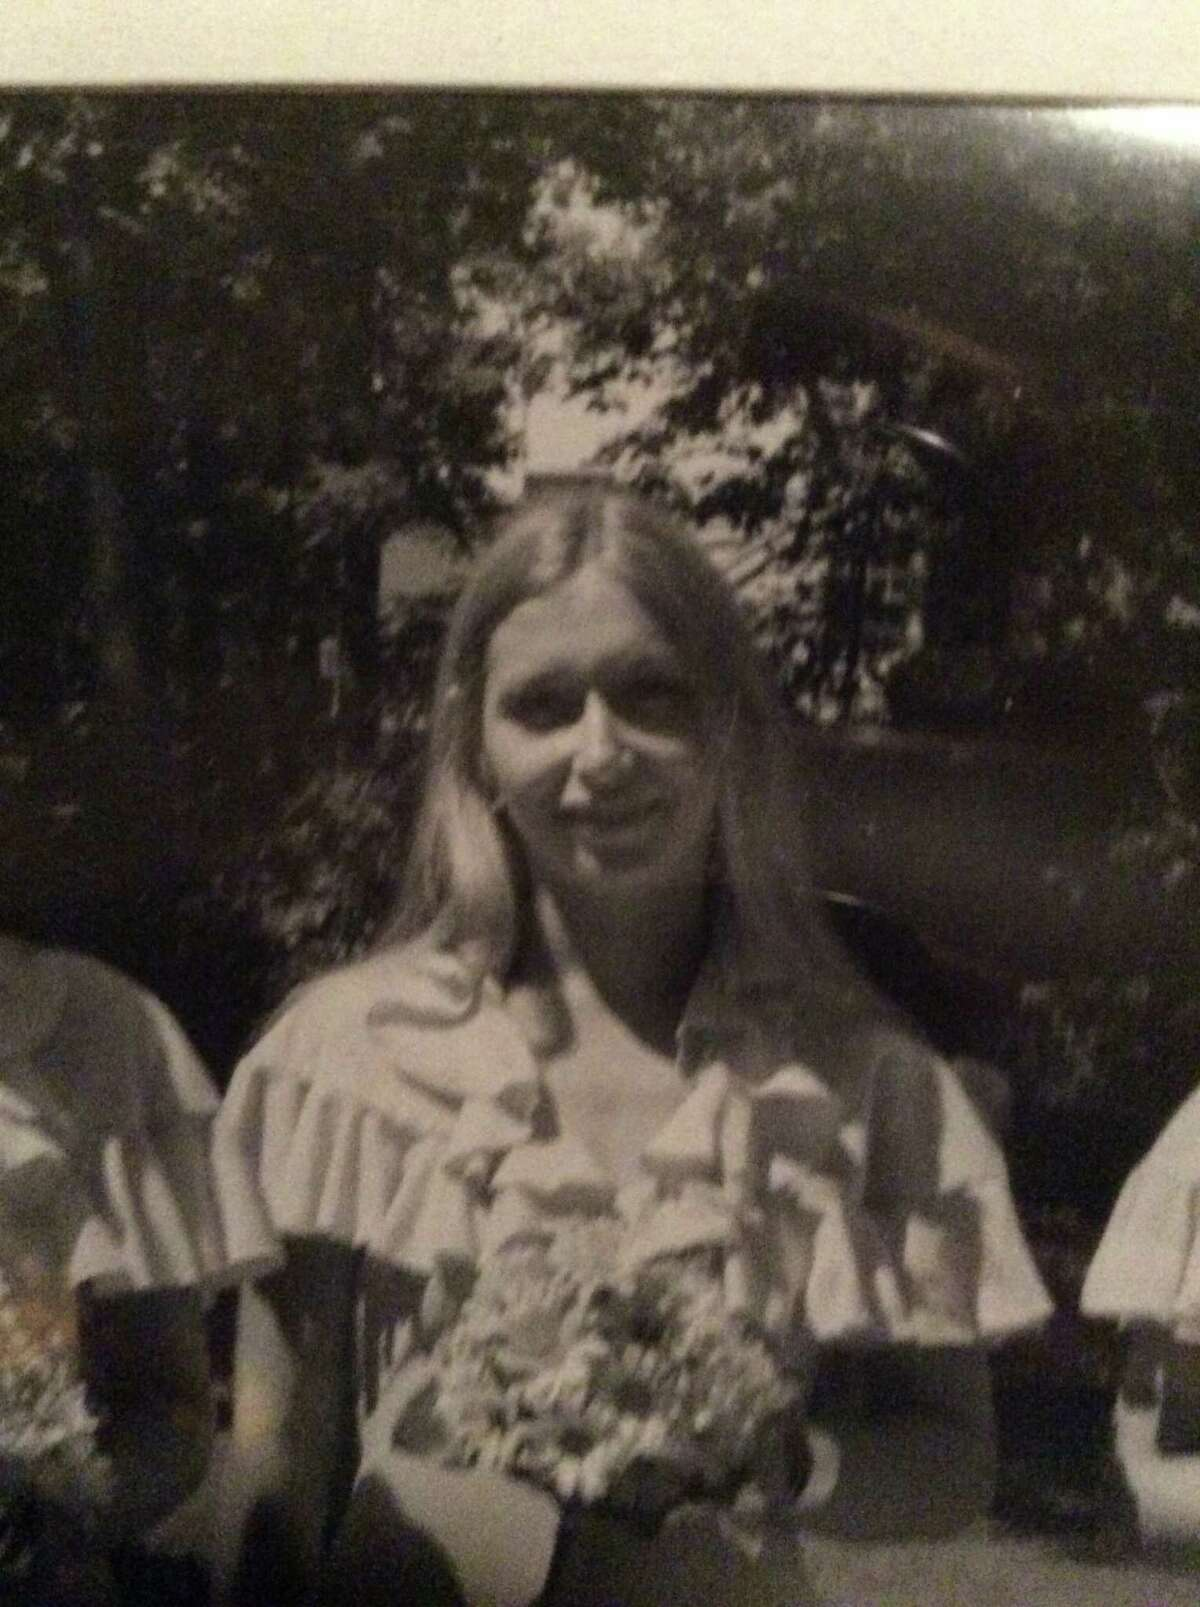 Lori Milks in 1975 at the wedding of her friends Daniel and Judy Odell. (Courtesy the Odells)